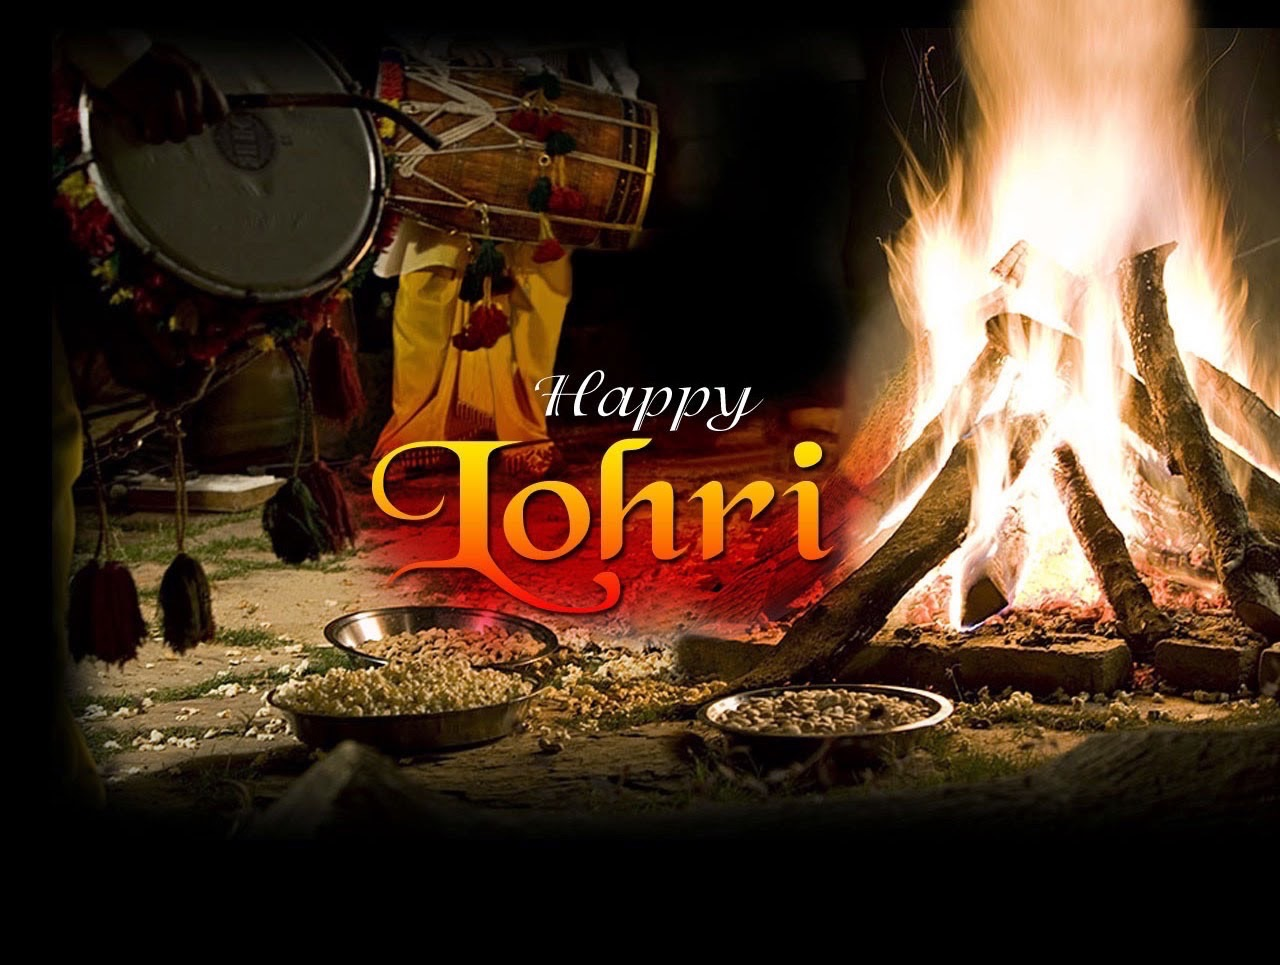 Gm Friends And Family >> Happy Lohri - Whatsapp Forwards, Jokes, Riddles and Puzzles